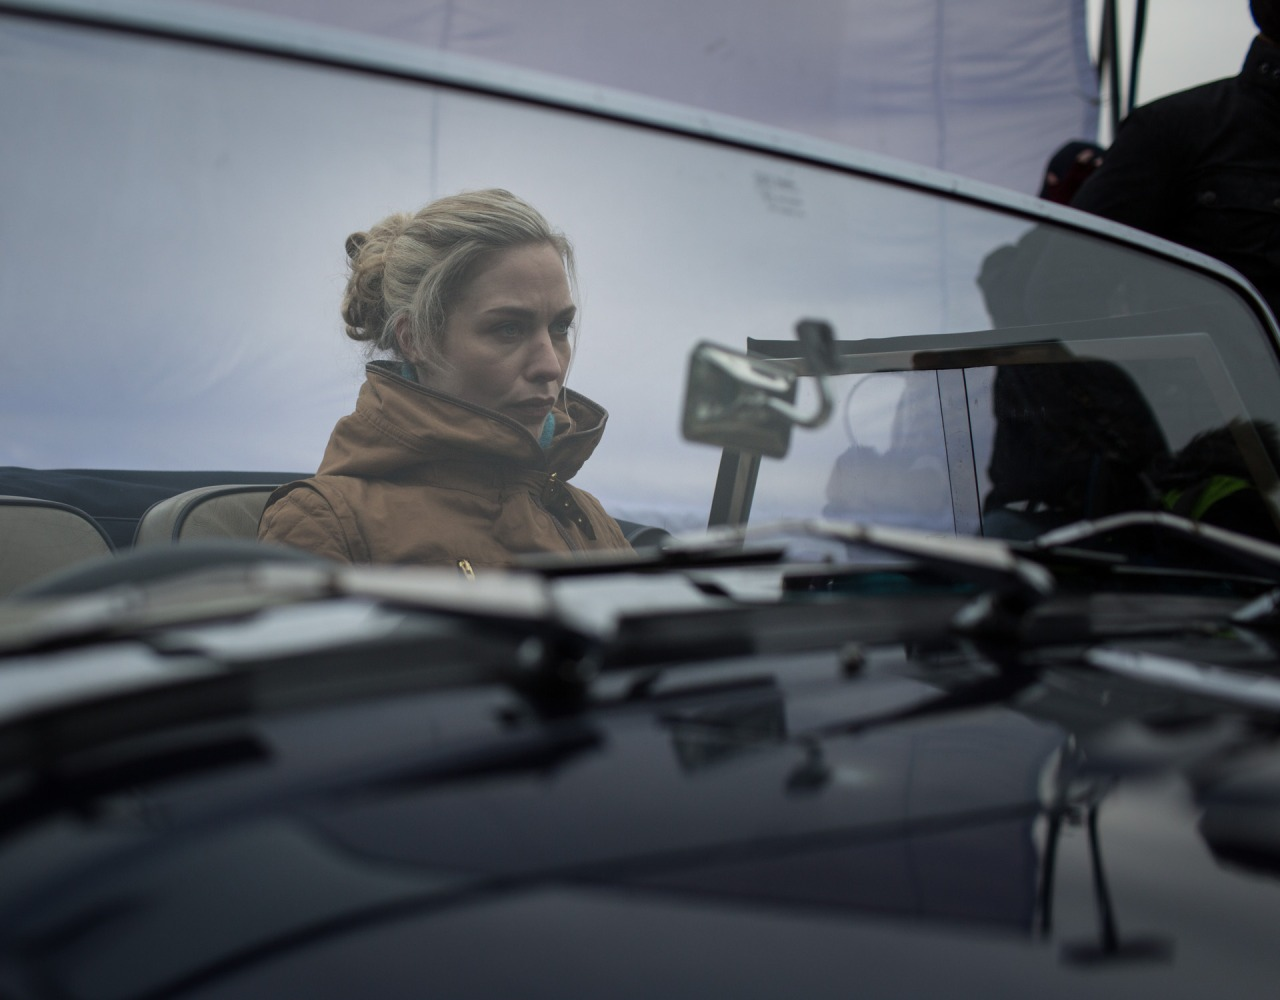 The car washer behind the scenes - photo by Gyorgy Lászlo